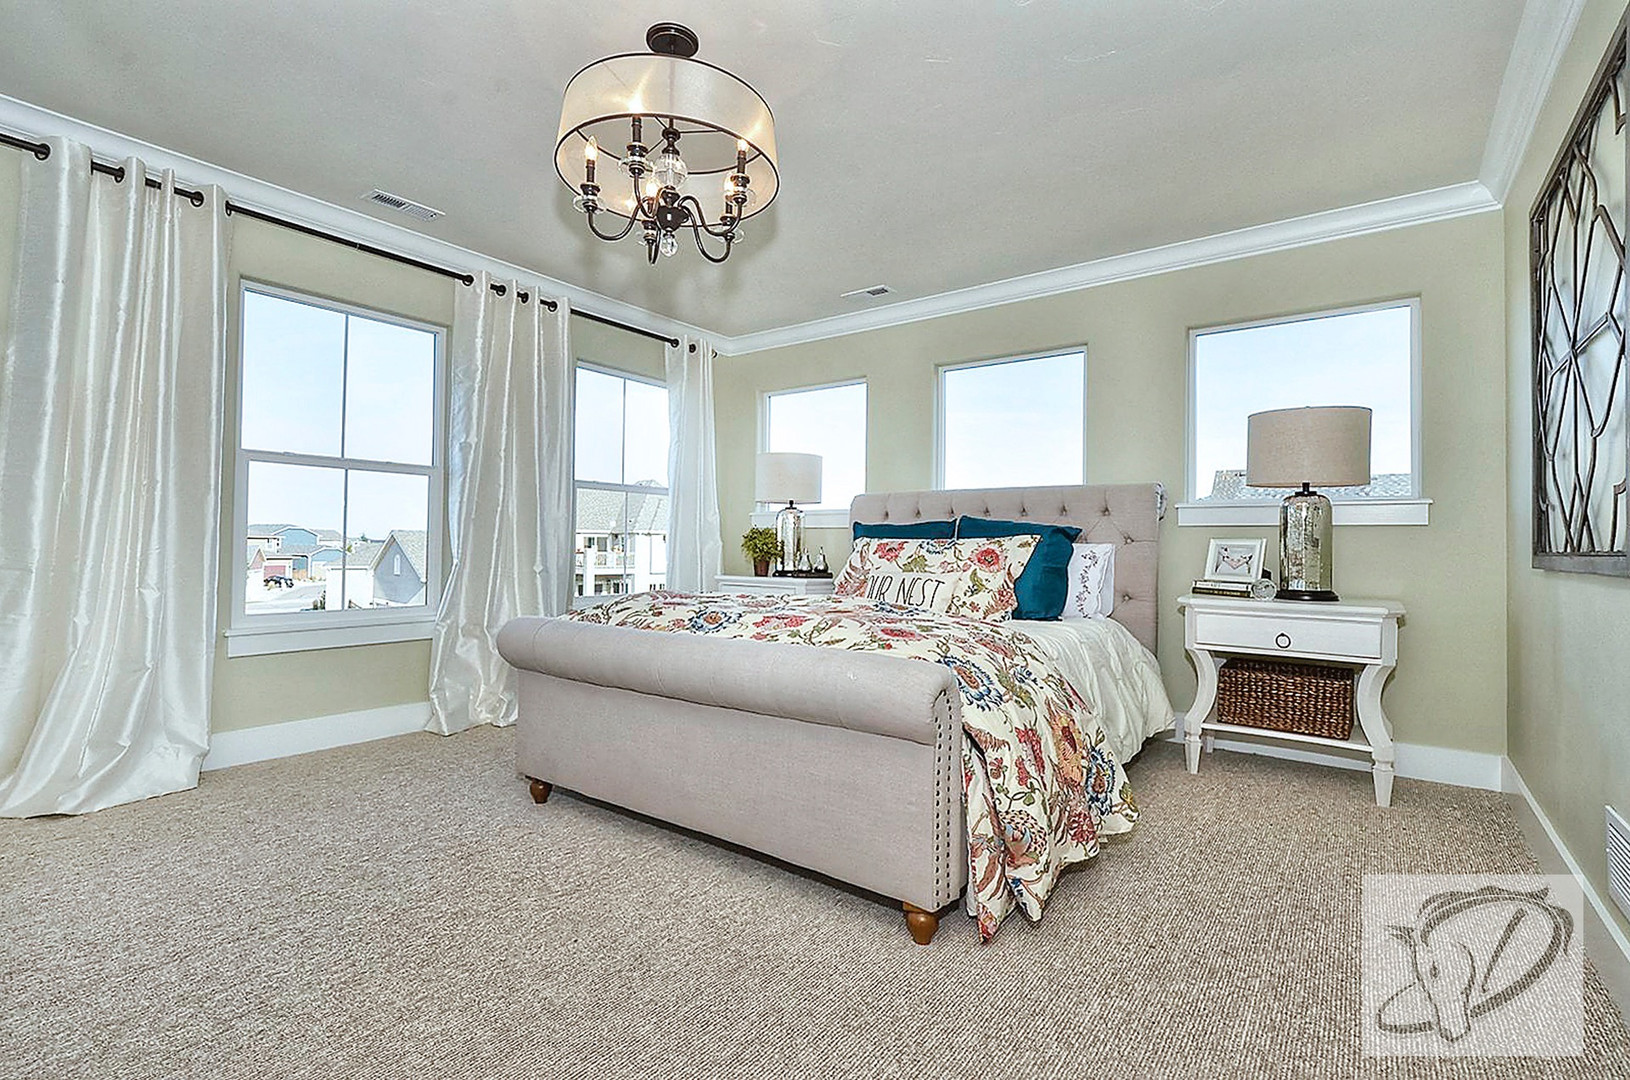 Light filled master bedroom with tufted upholstered bed